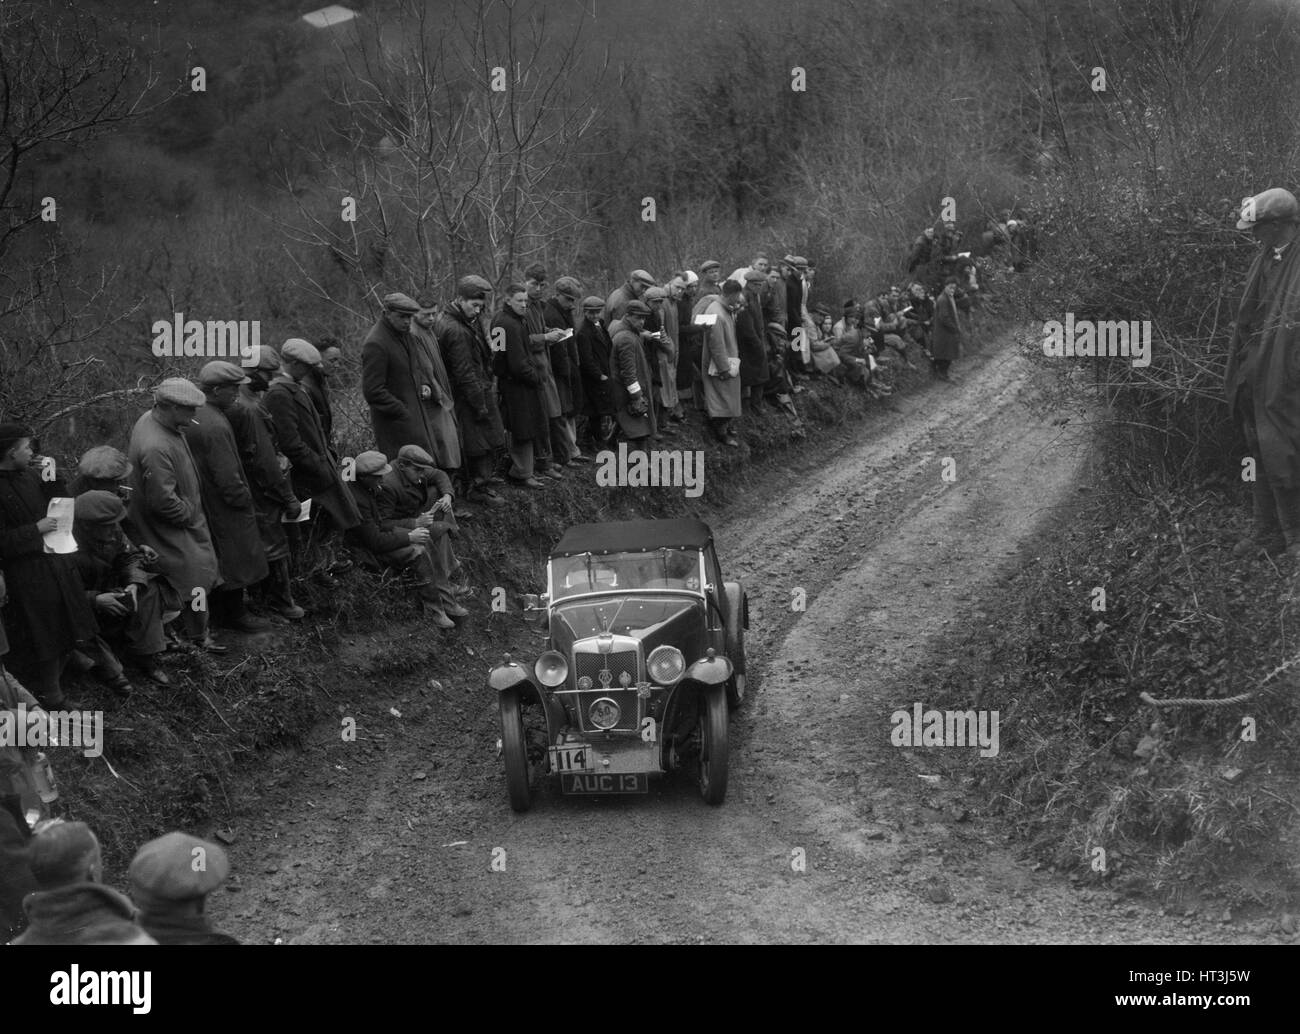 MG PA of JWS Johnson competing in the MCC Lands End Trial, 1935. Artist: Bill Brunell. - Stock Image